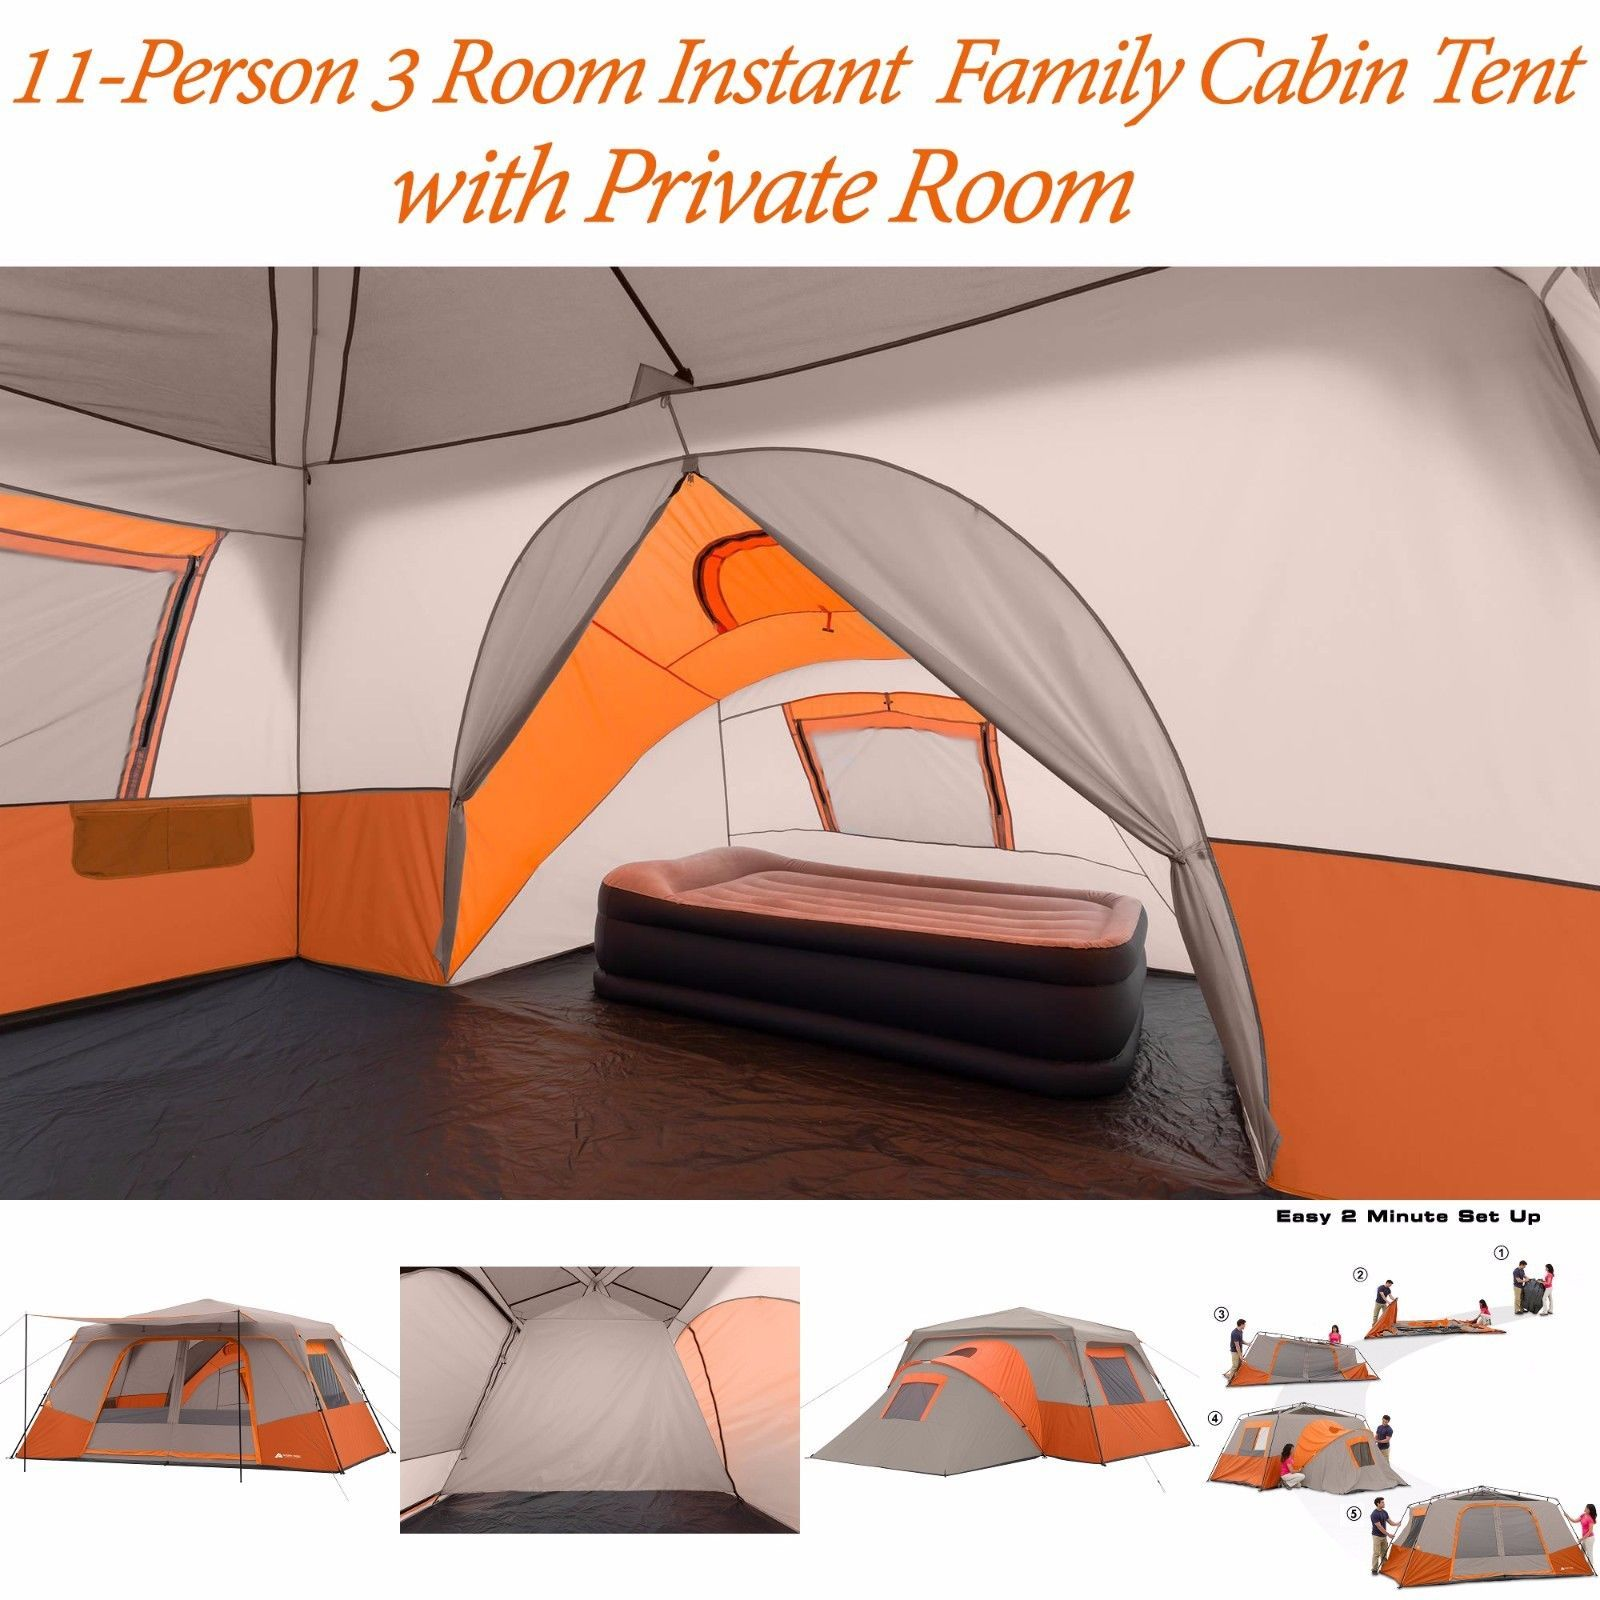 Ozark Trail 11 Person 3 Room Instant Cabin Family Large Tent C&ing OrangeBeige  sc 1 st  Pinterest & Ozark Trail 11 Person 3 Room Instant Cabin Family Large Tent ...